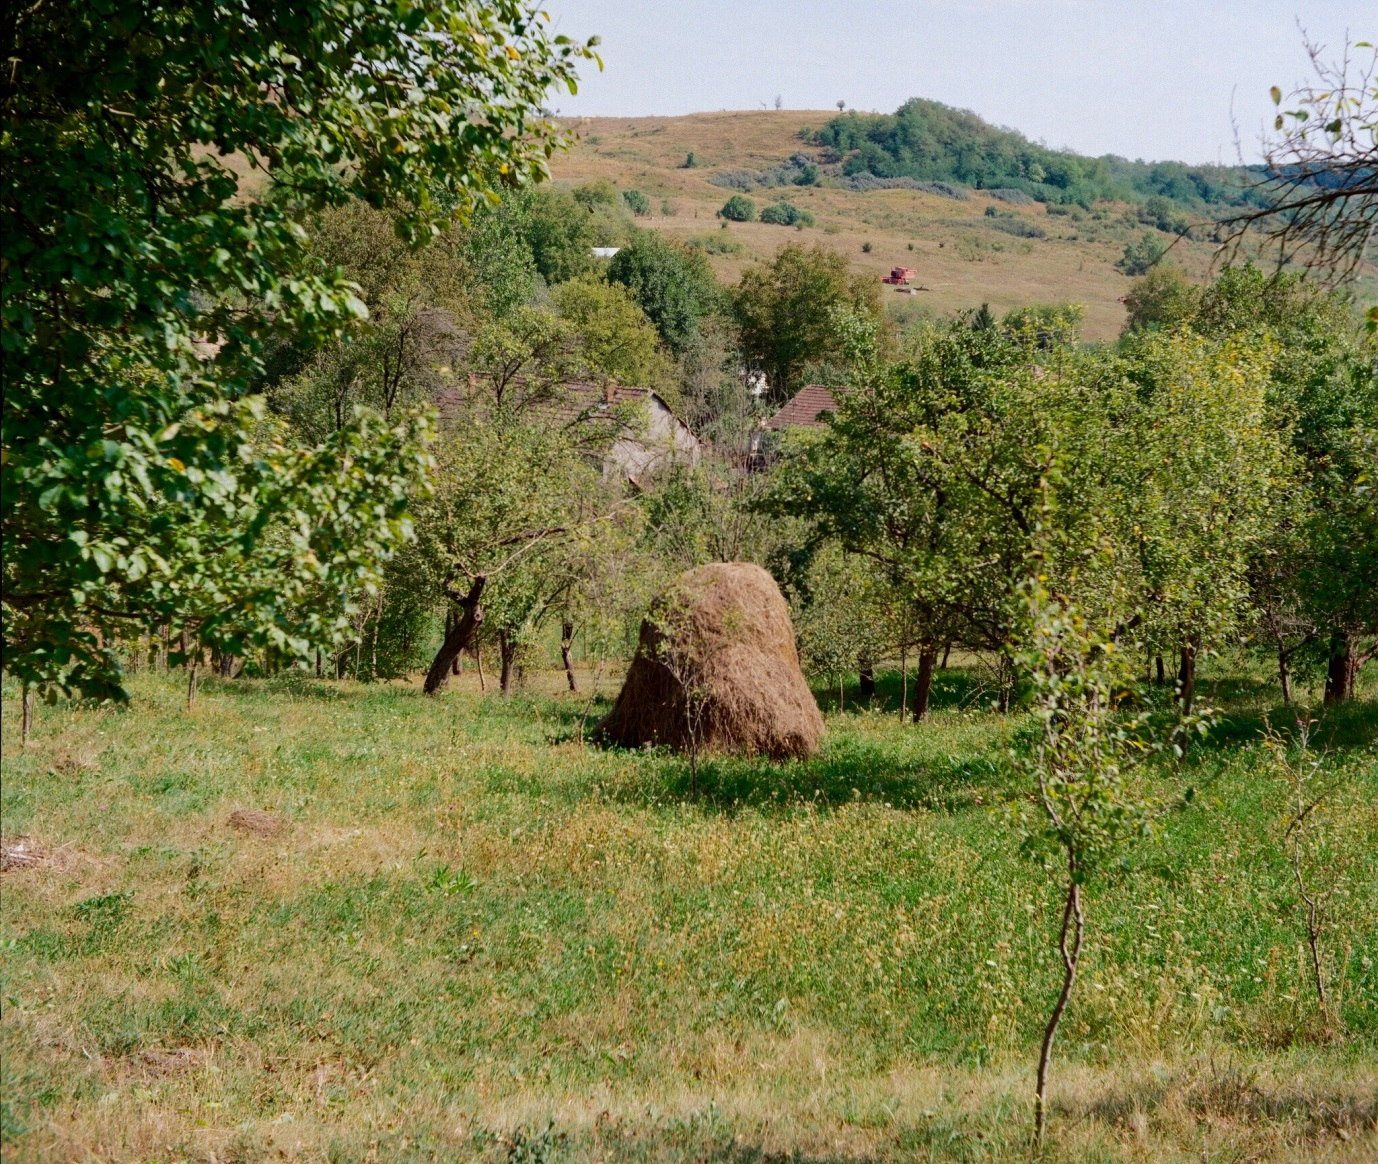 C:\Users\inrc\Documents\Romania\Yashica images\Hay meadow.jpg